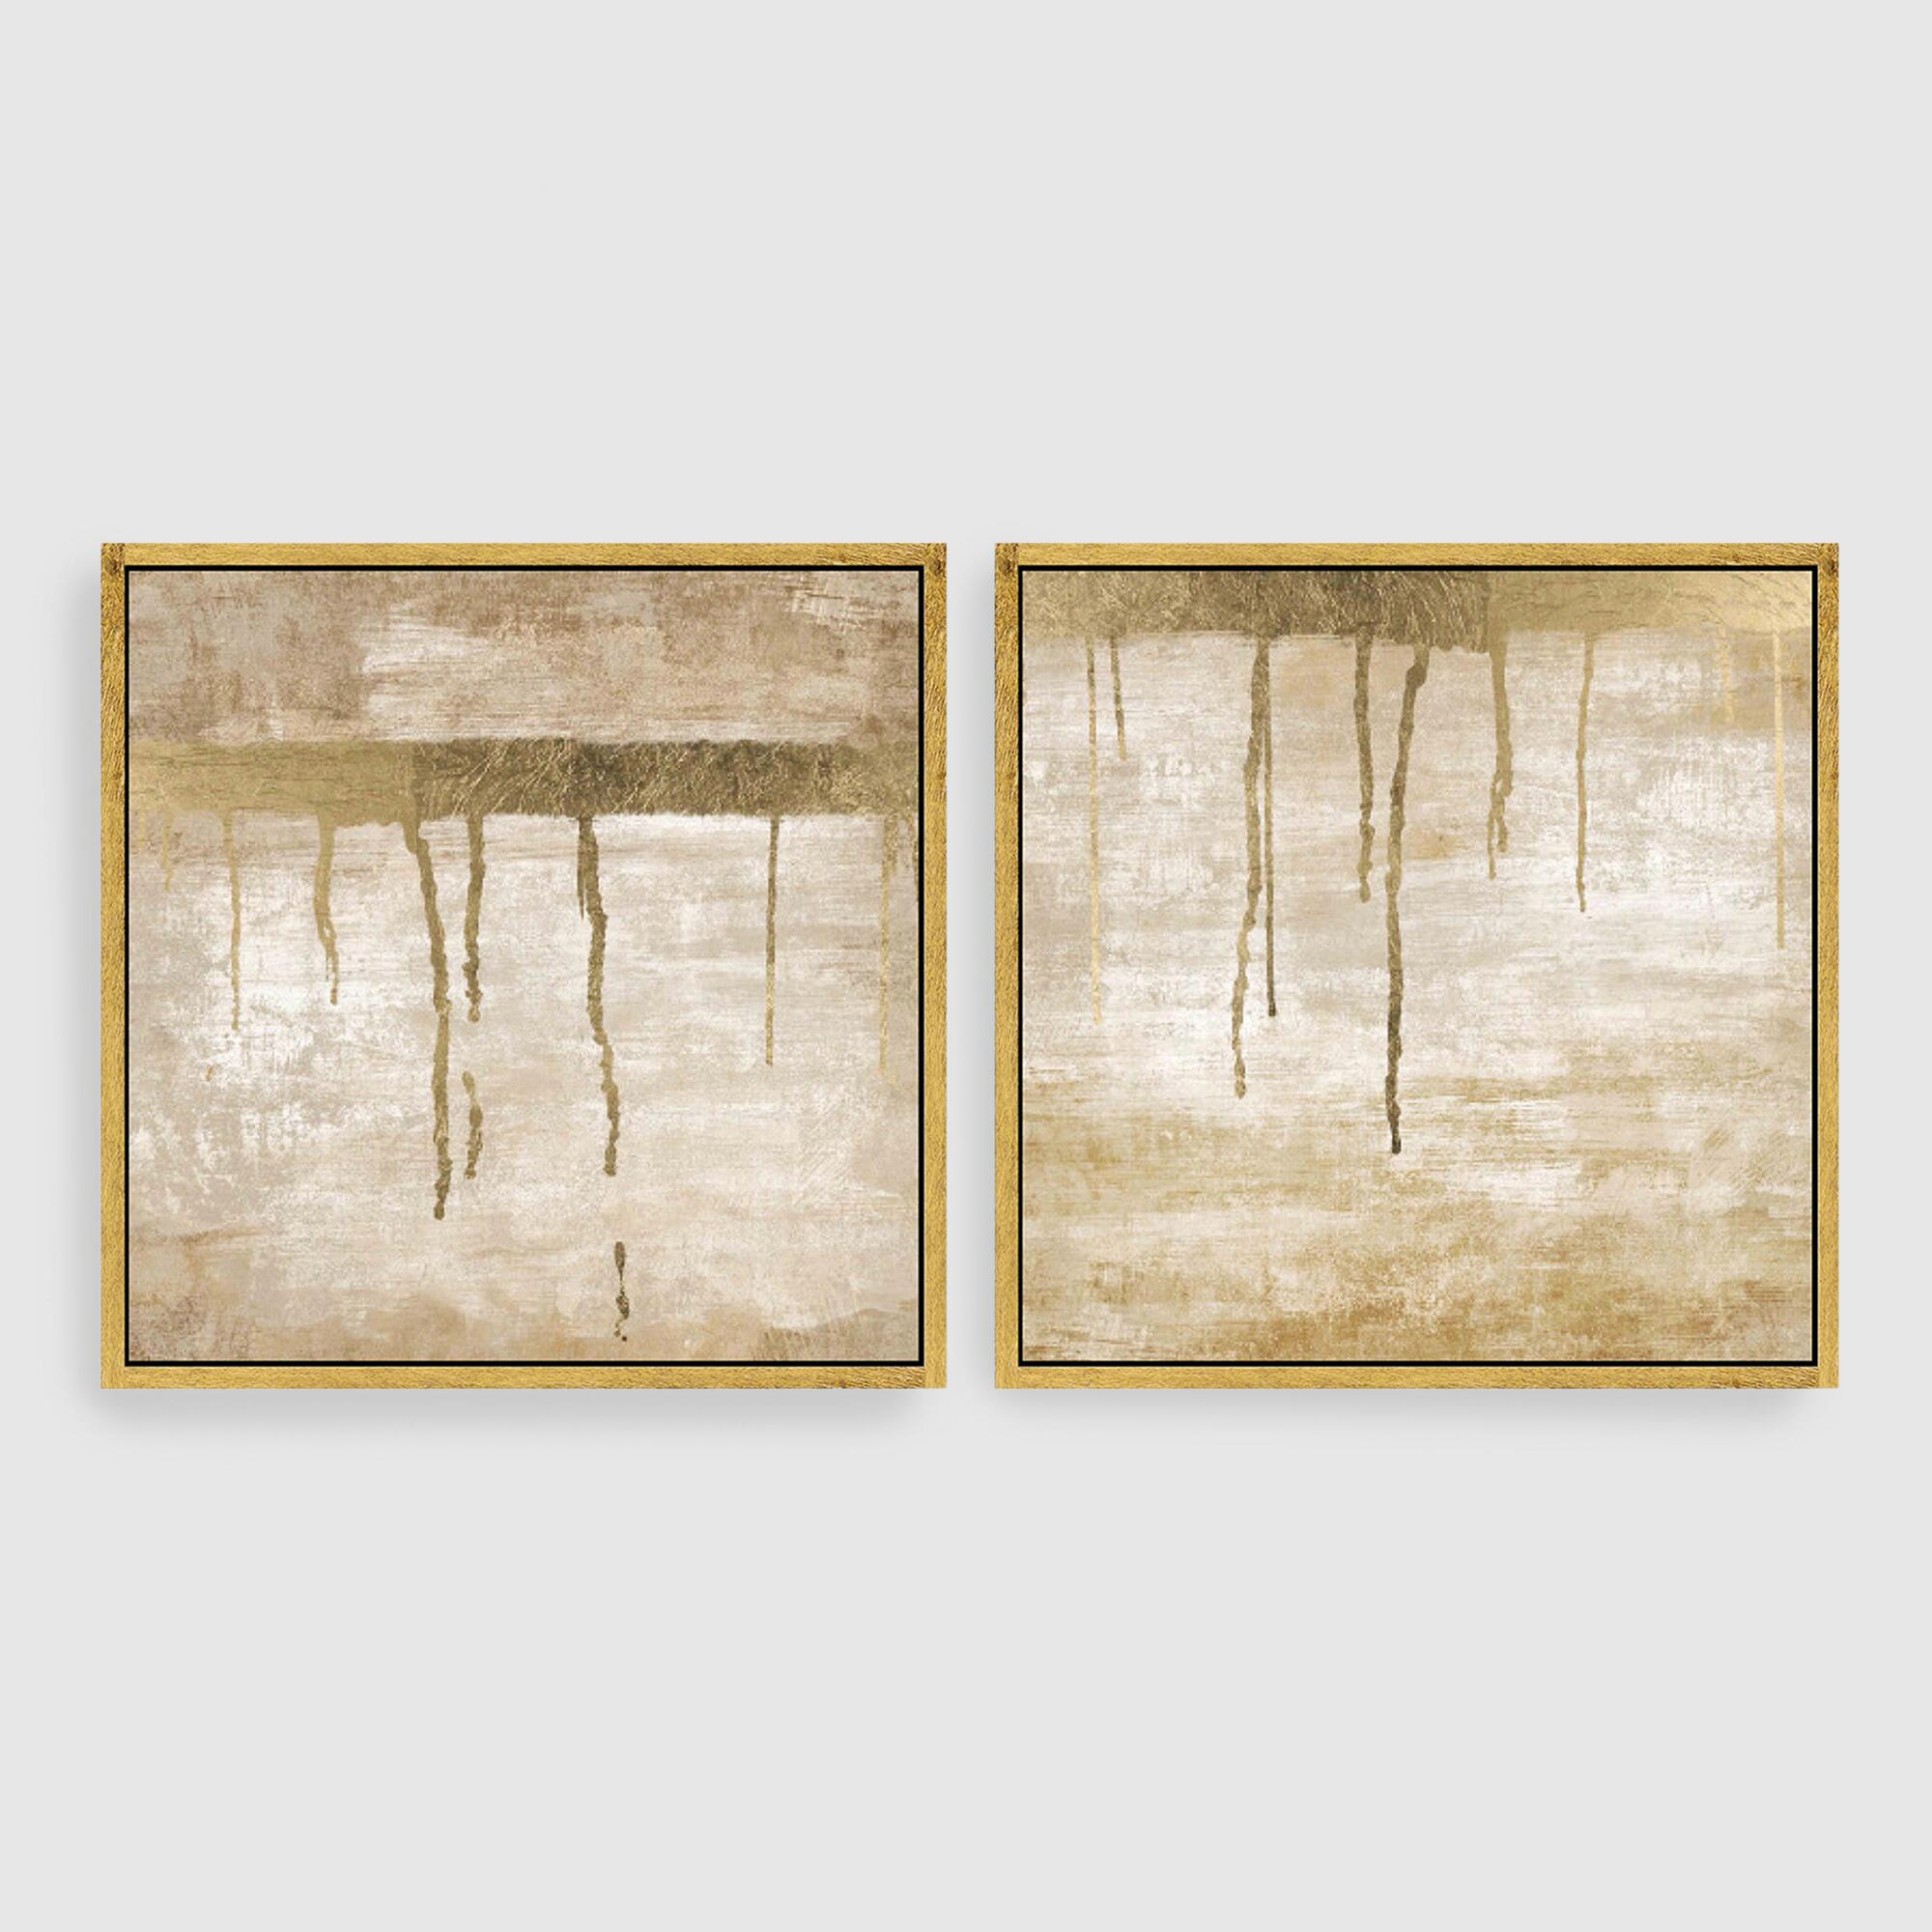 Wall Art Decor Gold : Dripping in gold abstract canvas wall art leaf set of